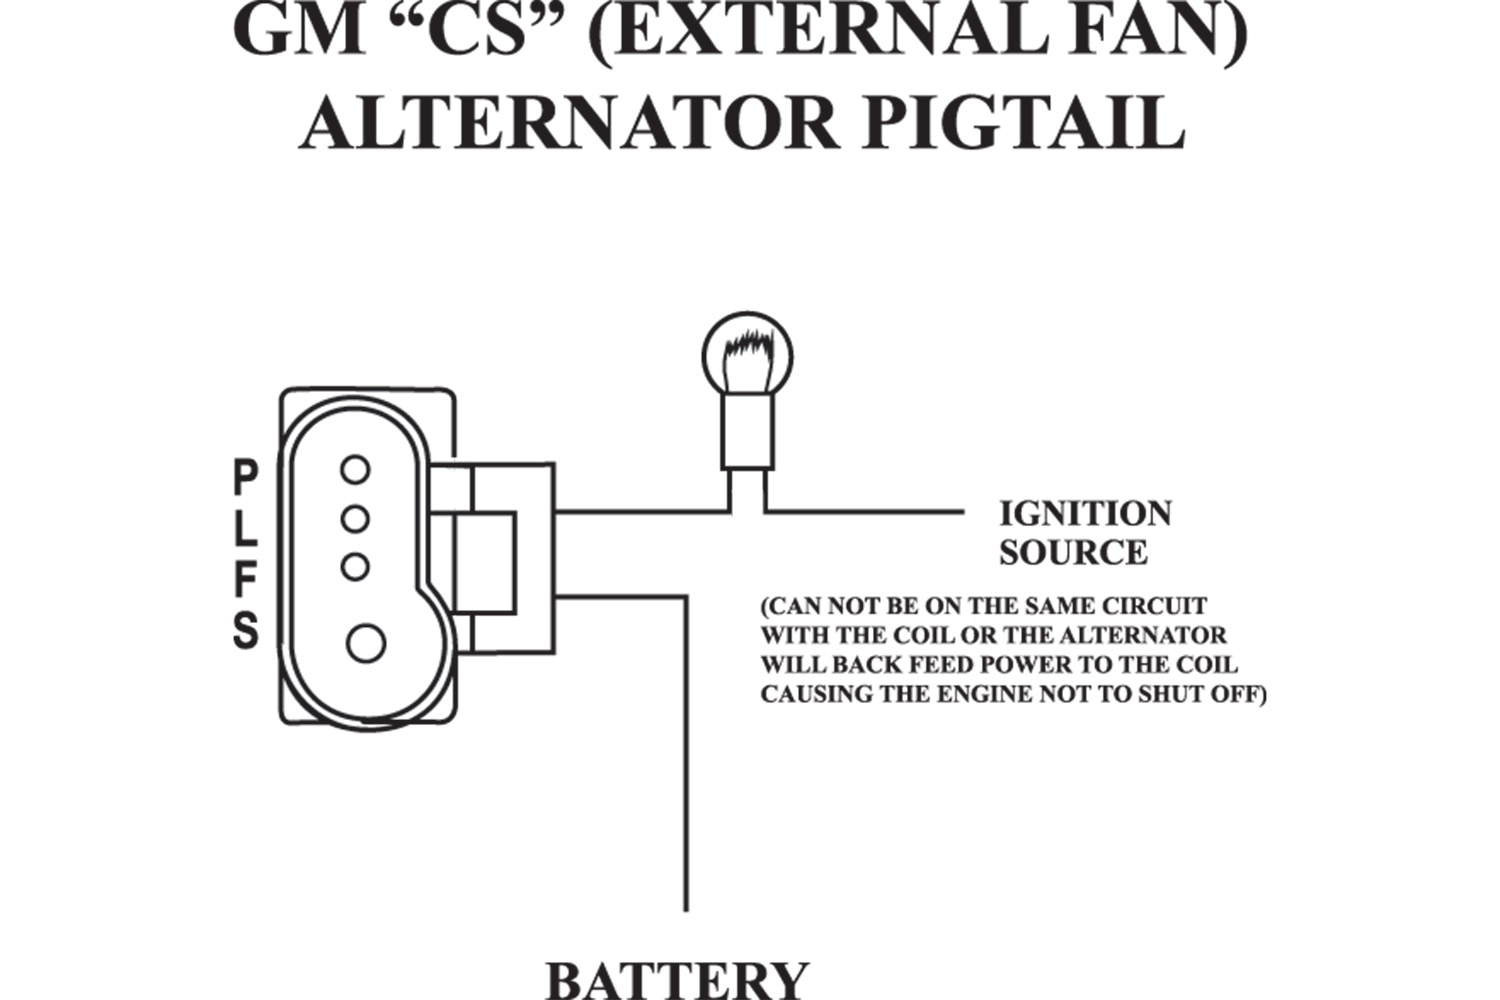 Wiring Diagram For Cs130 Alternator